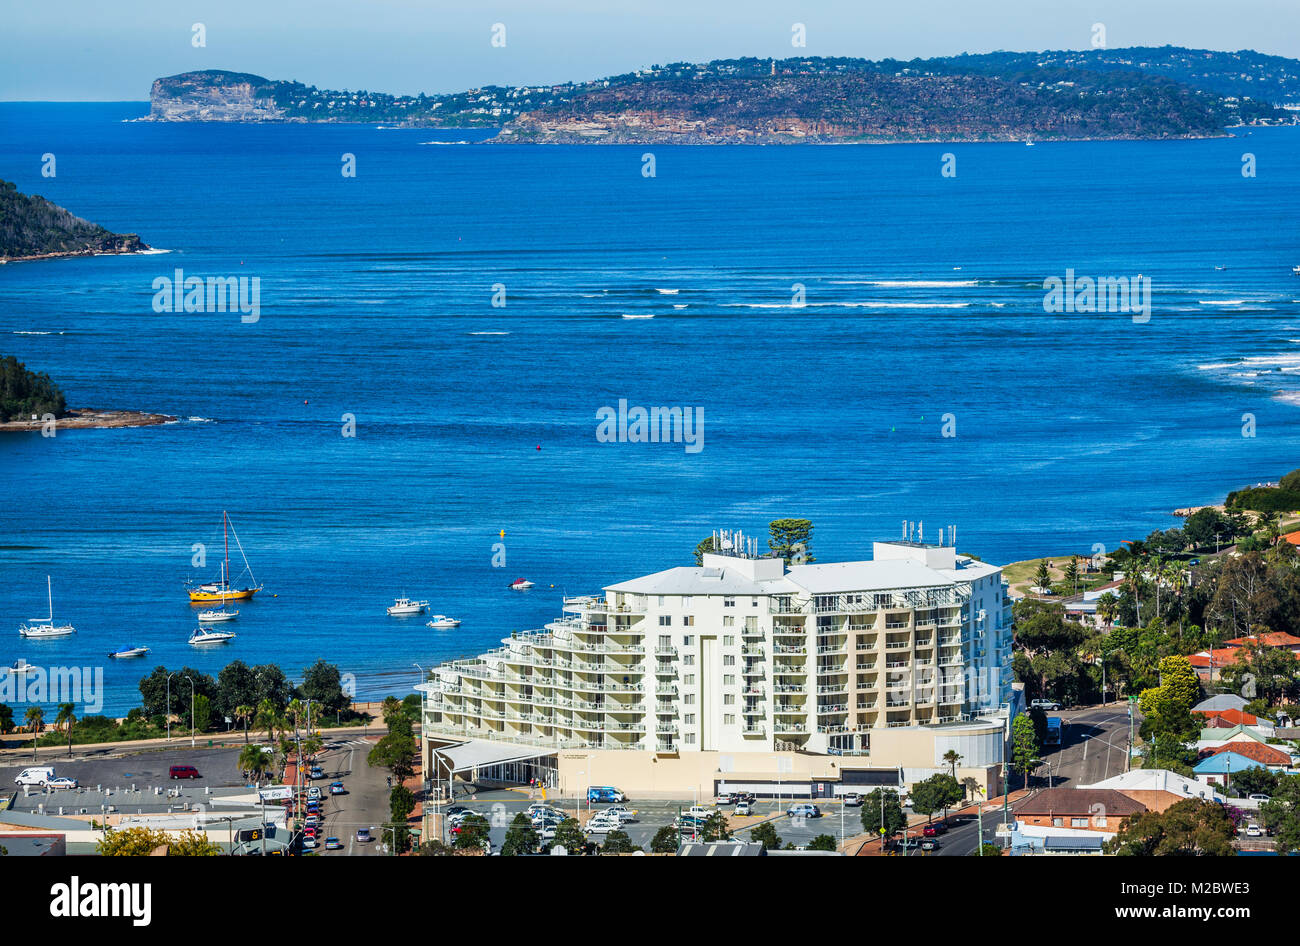 Australia, New South Wales, Central Coast, view of the prominent Mantra Ettalong Beach resort and Broken Bay - Stock Image